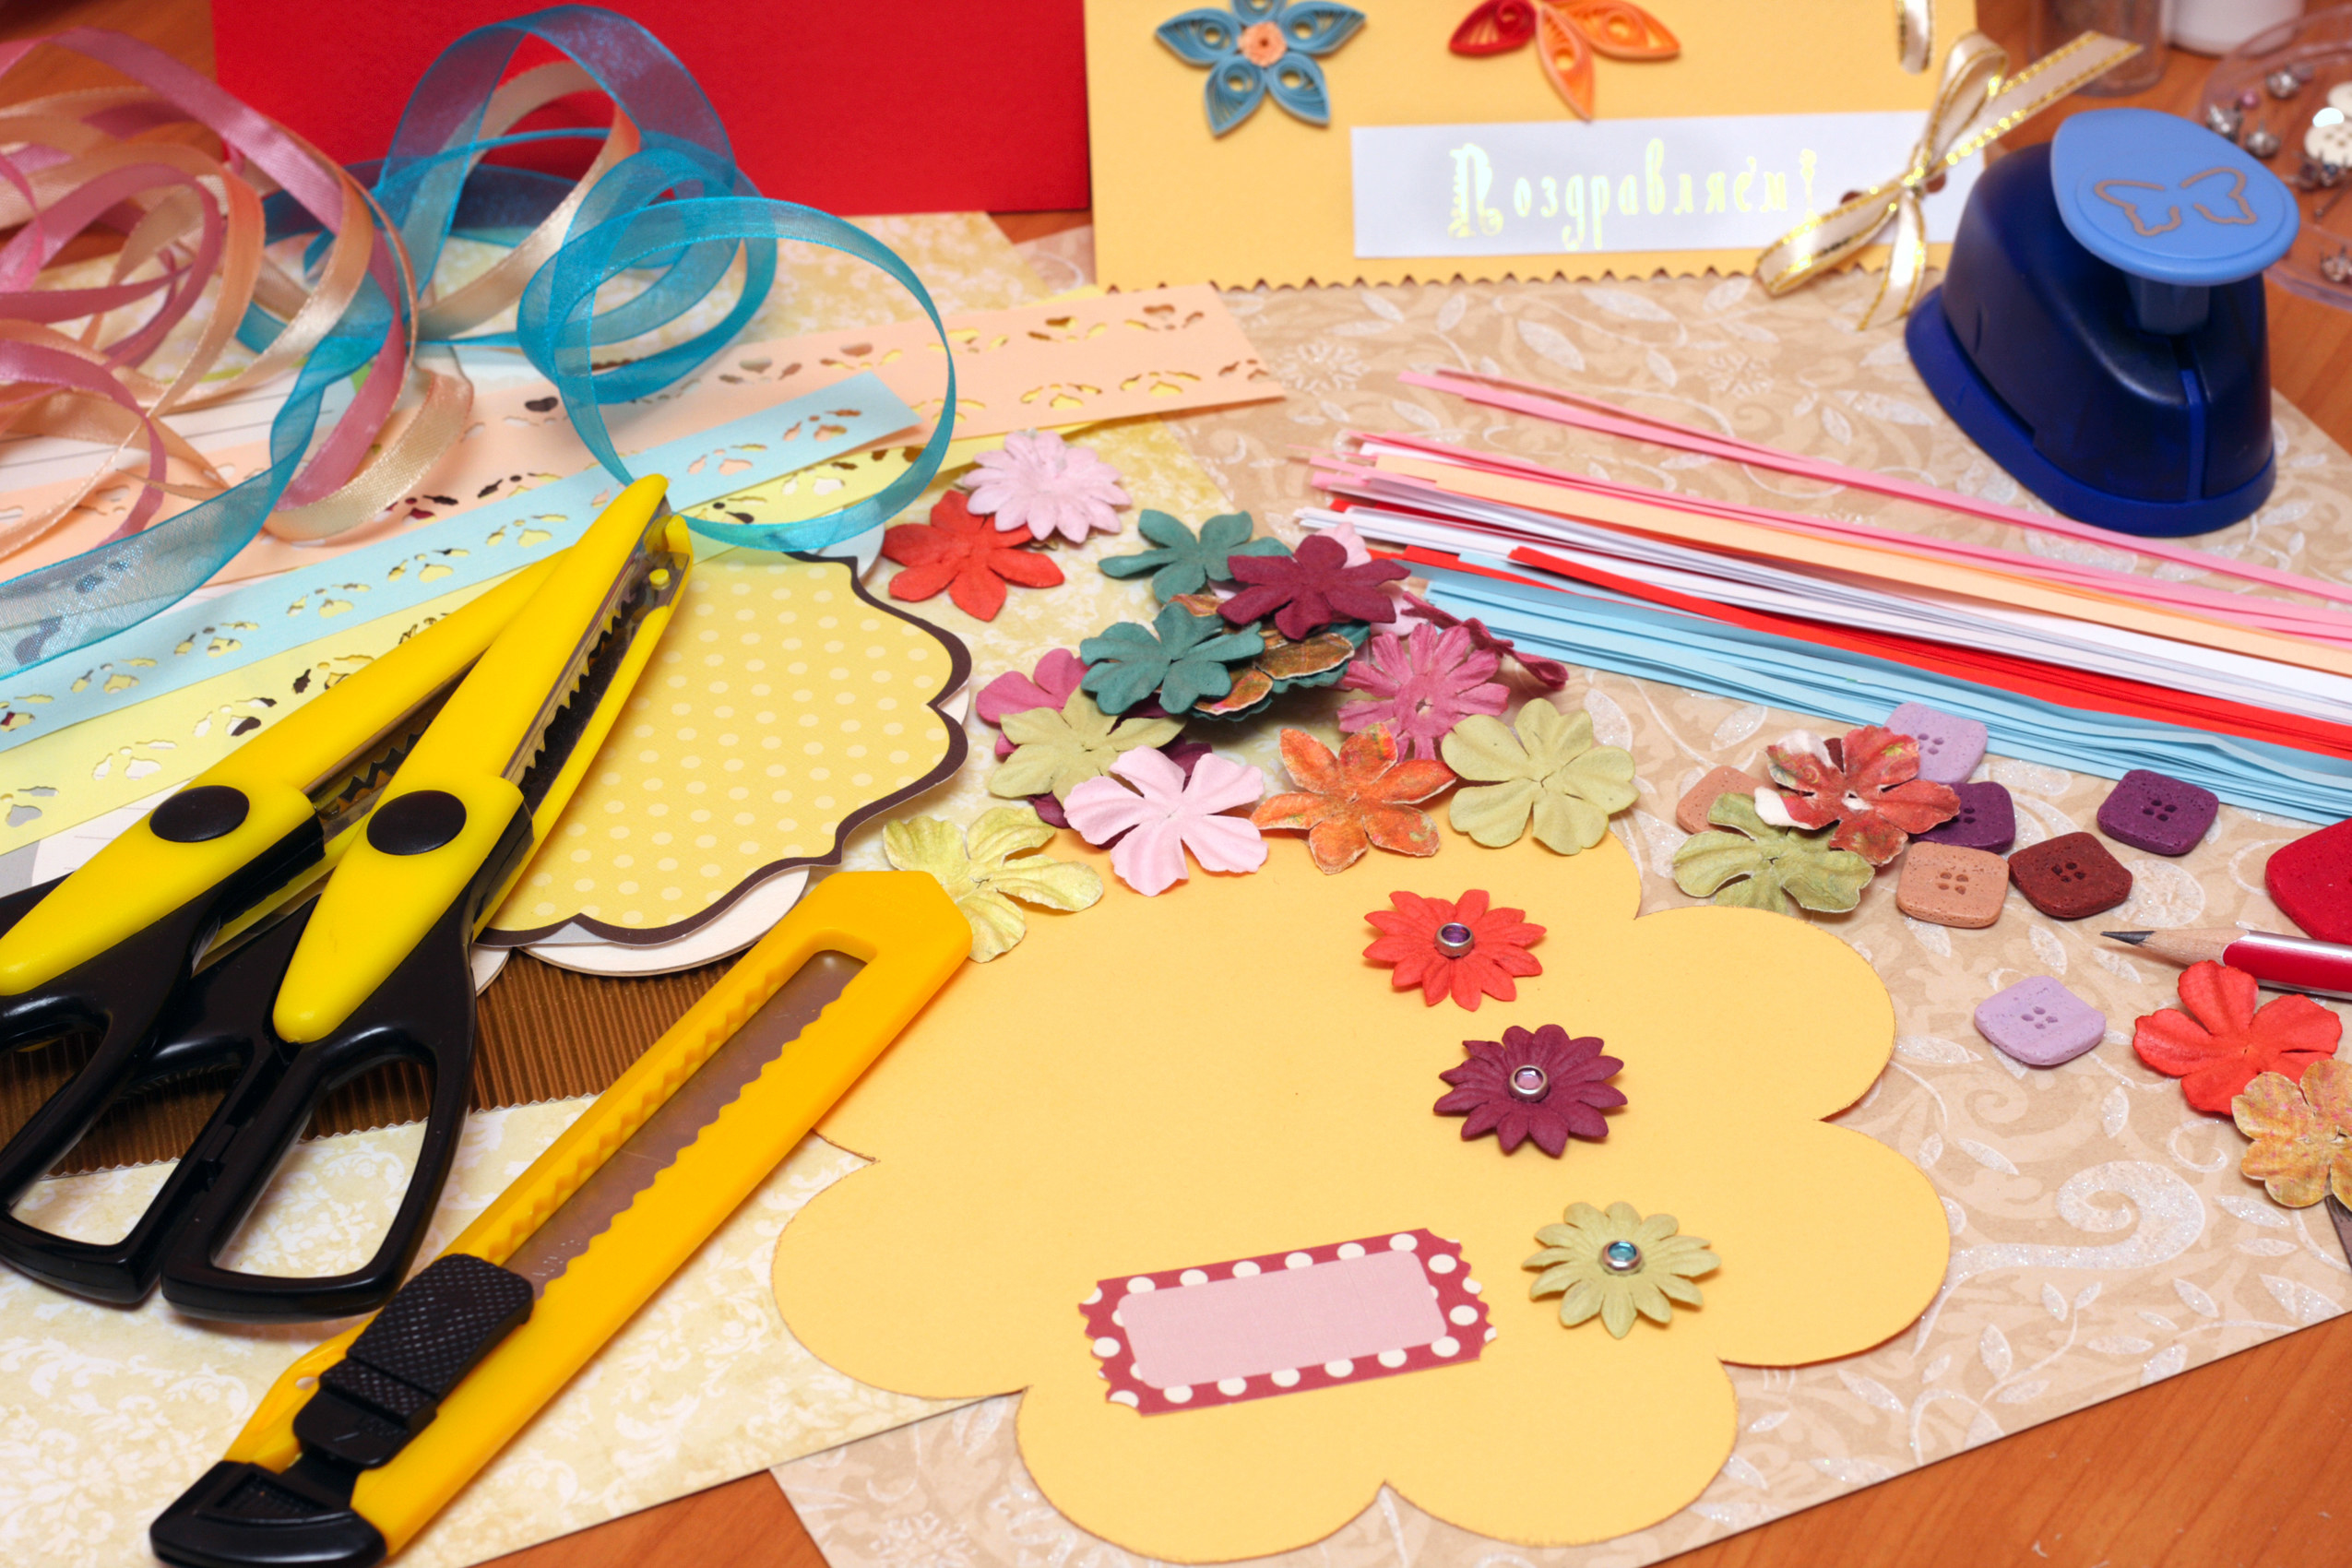 photo of a diy arts and craft table with paper shaped like flowers and accessories to be added to the paper shaped like a flower